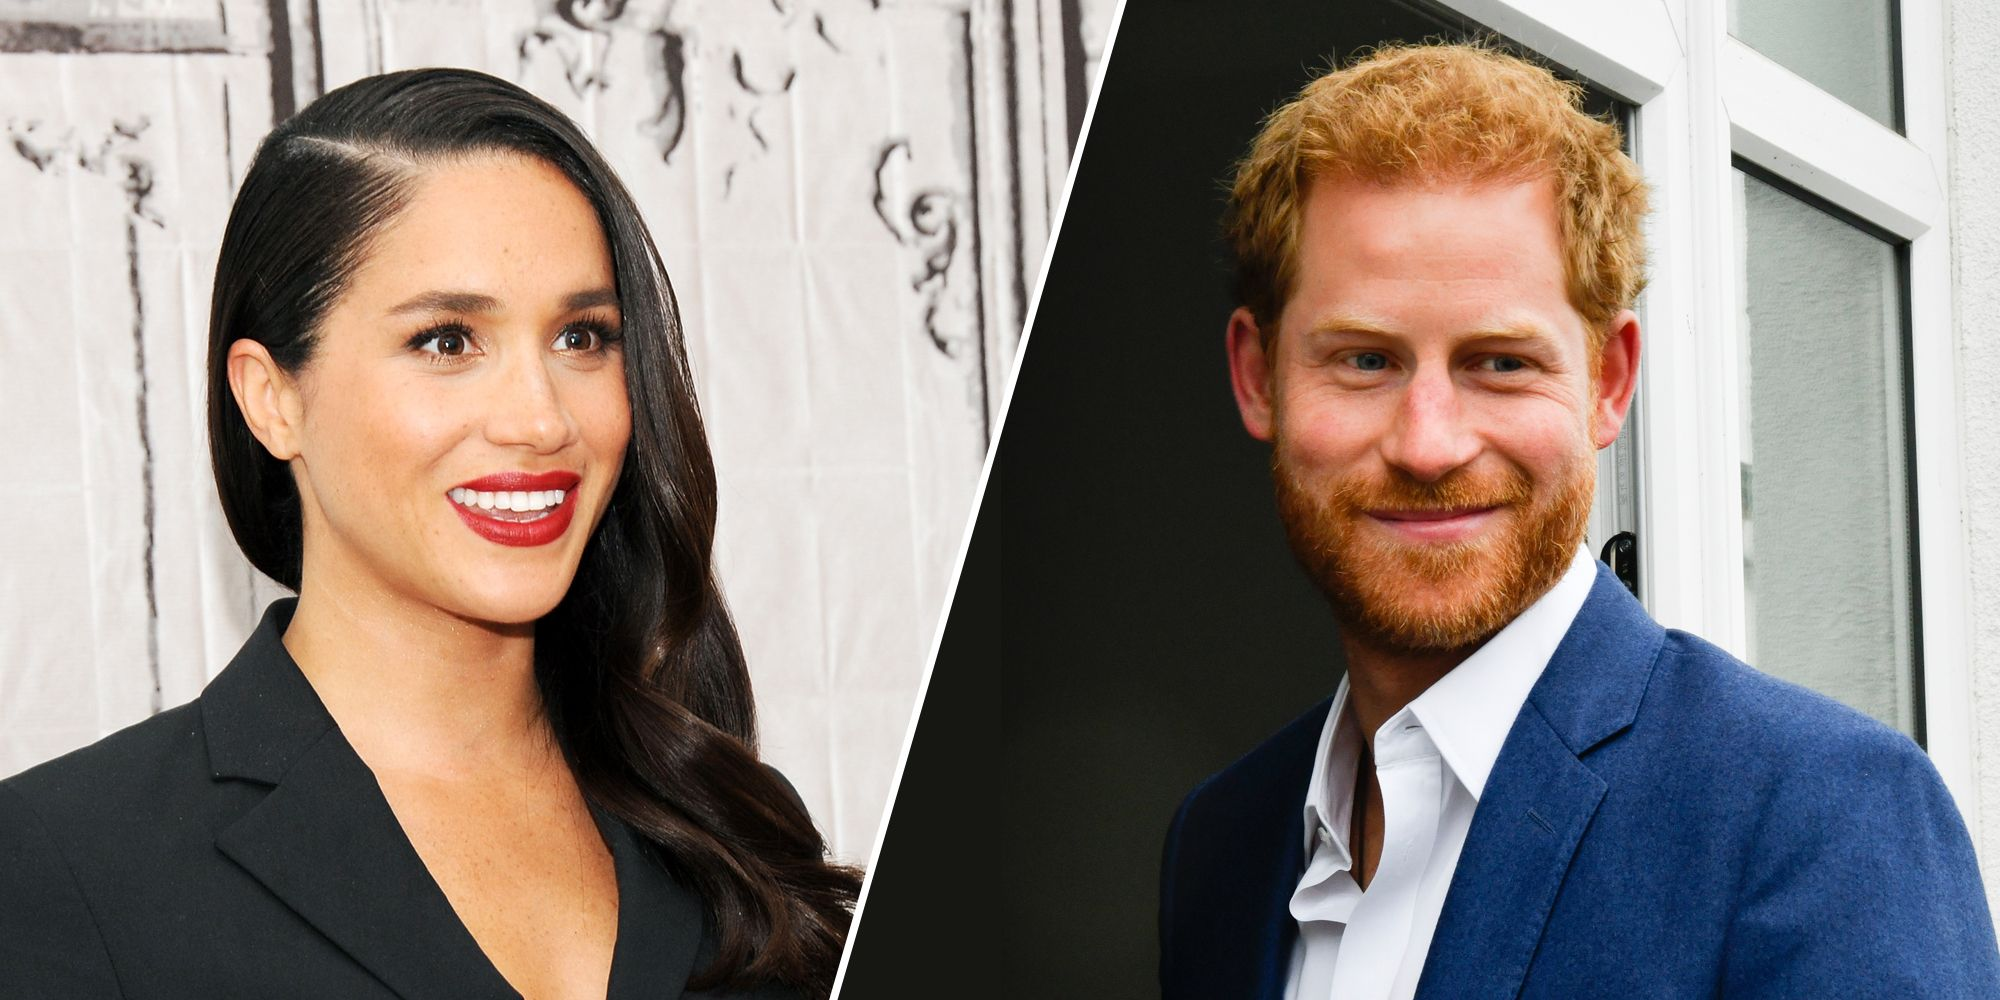 Watch Meghan Markle Has Reportedly Met Queen Elizabeth II video